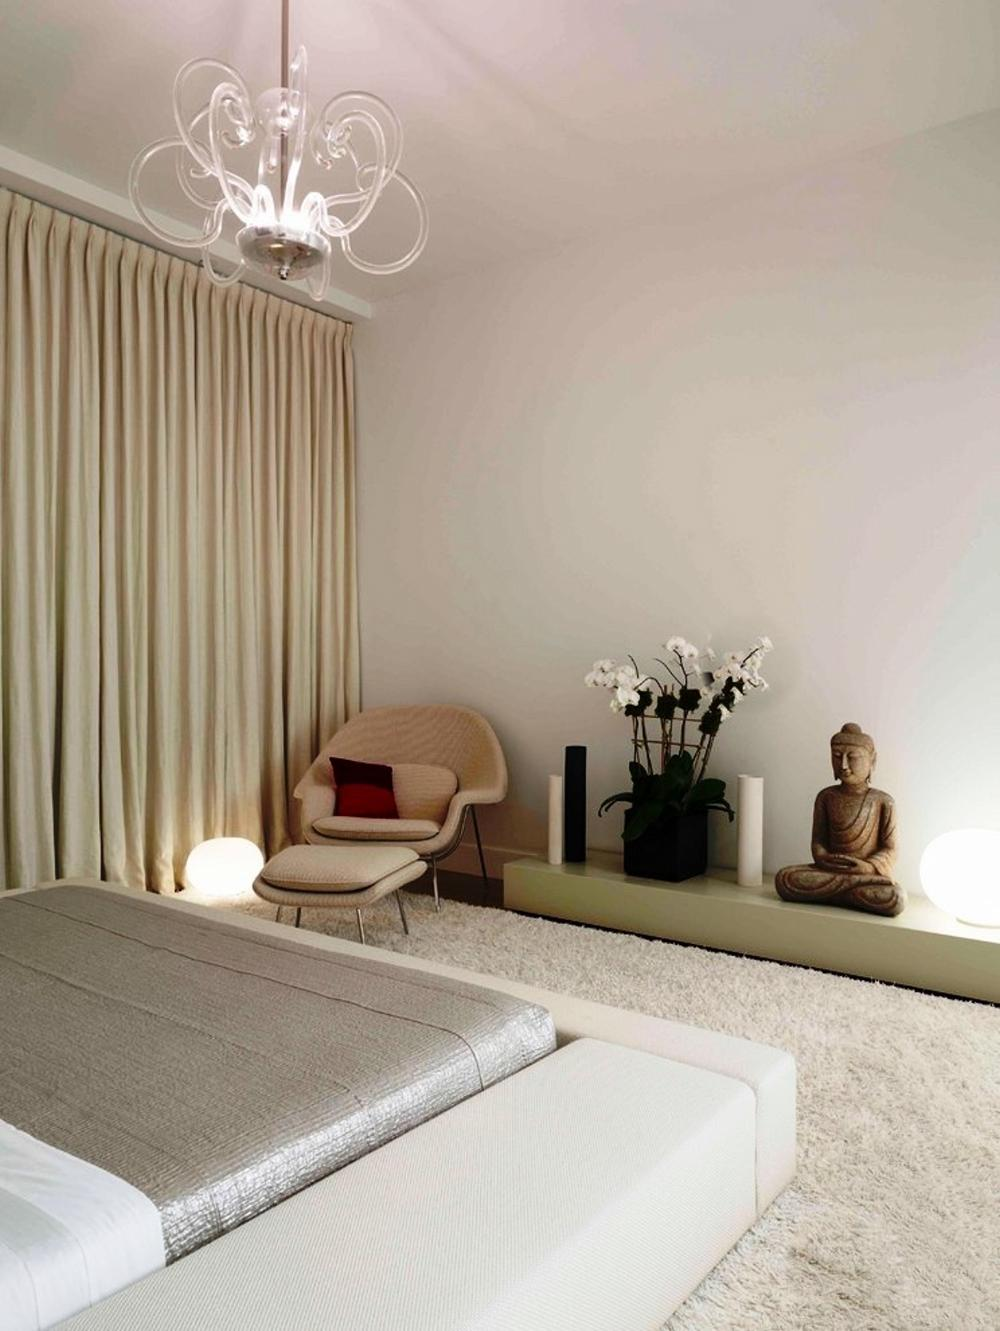 Calm and serenity with zen spaces how to build a house for Bedroom ideas zen